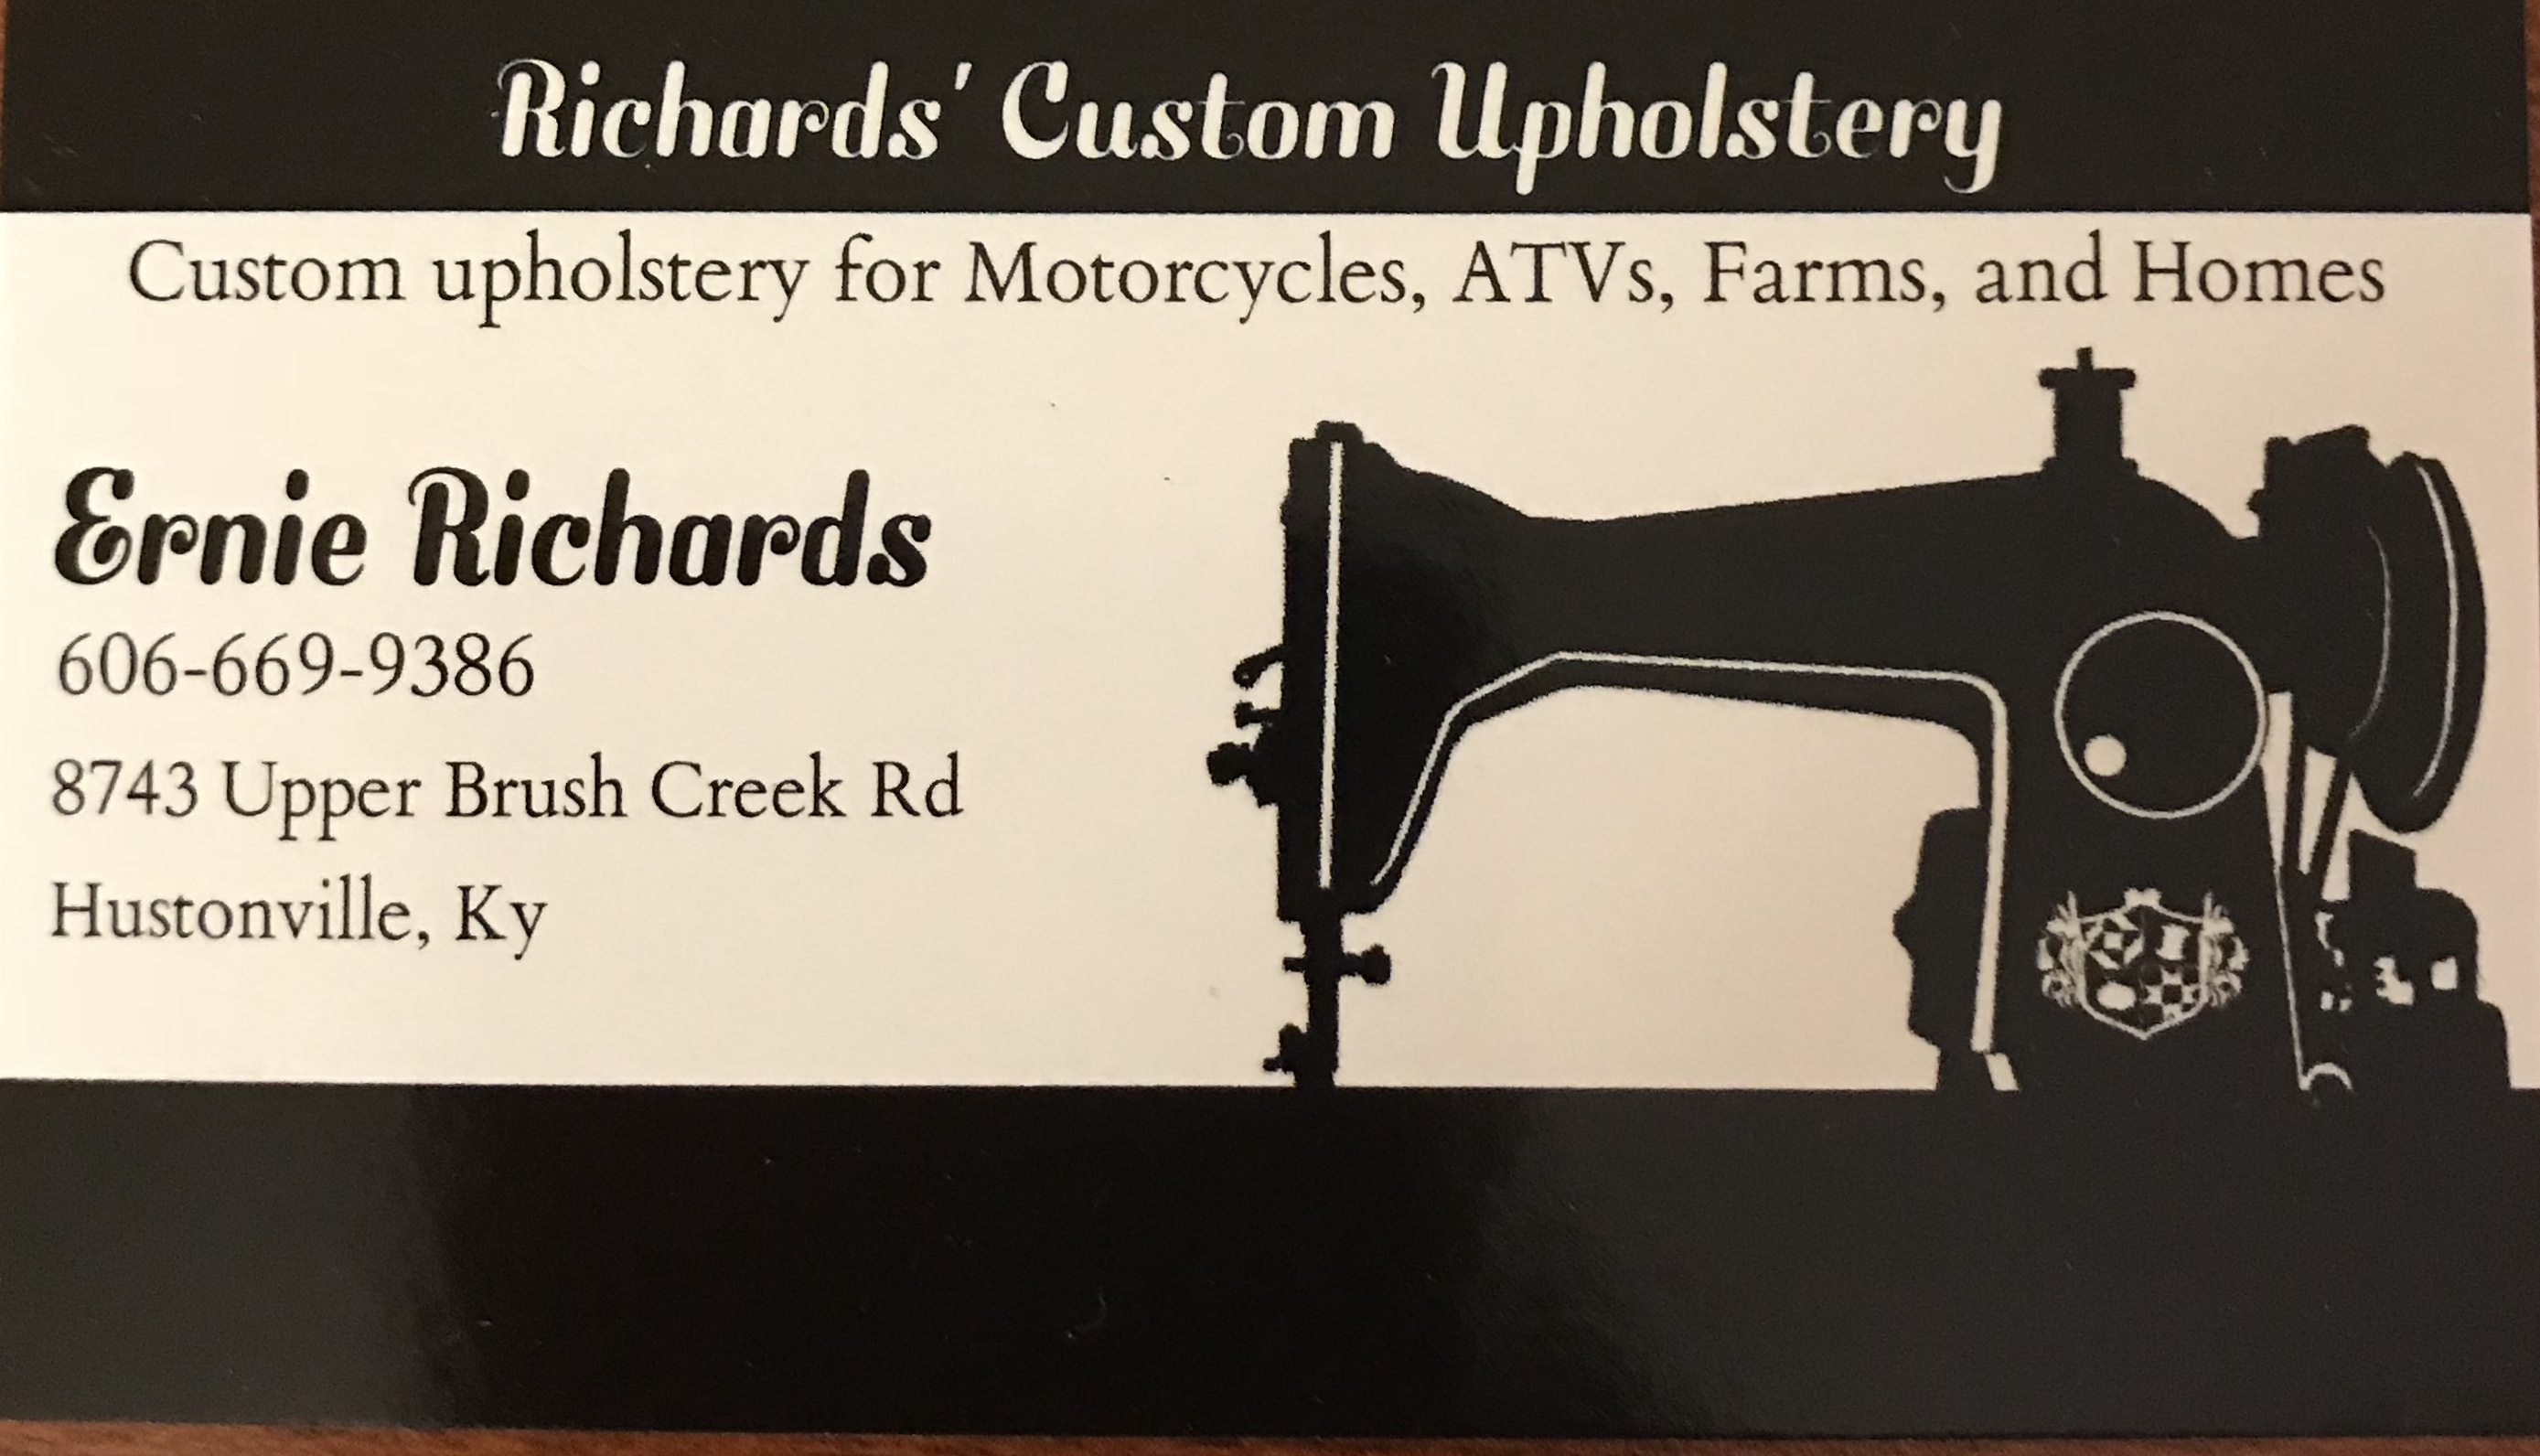 richards custom upholstery liberty casey county chamber